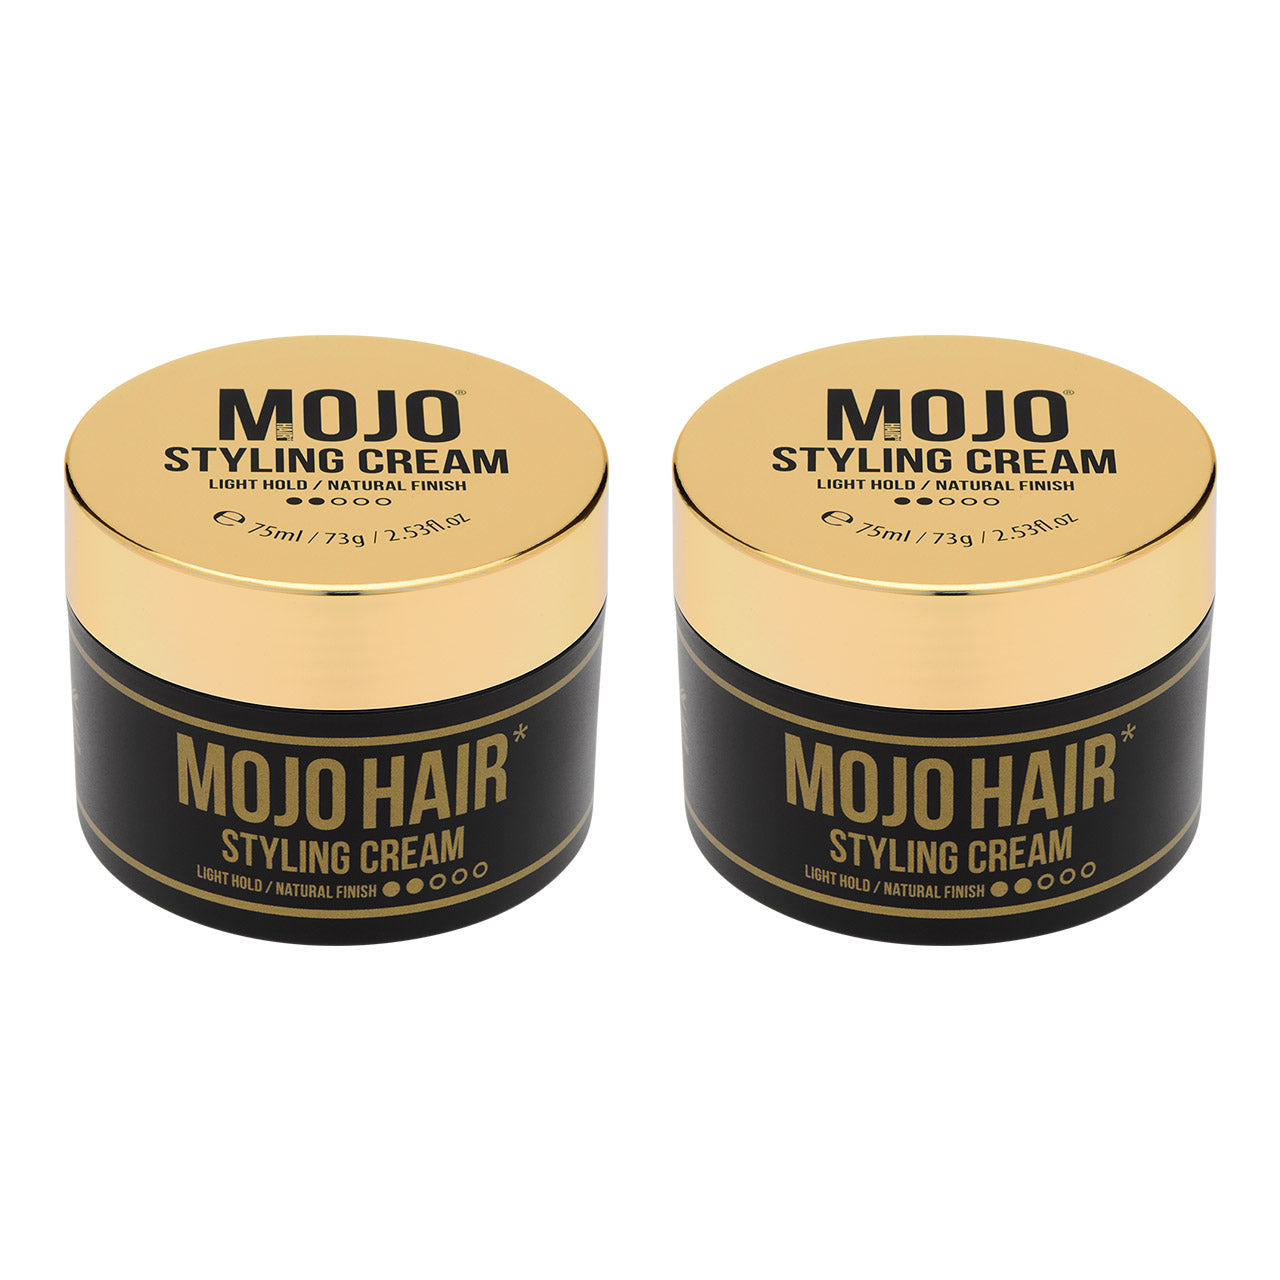 Mojo Hair Styling Cream (75ml) x 2